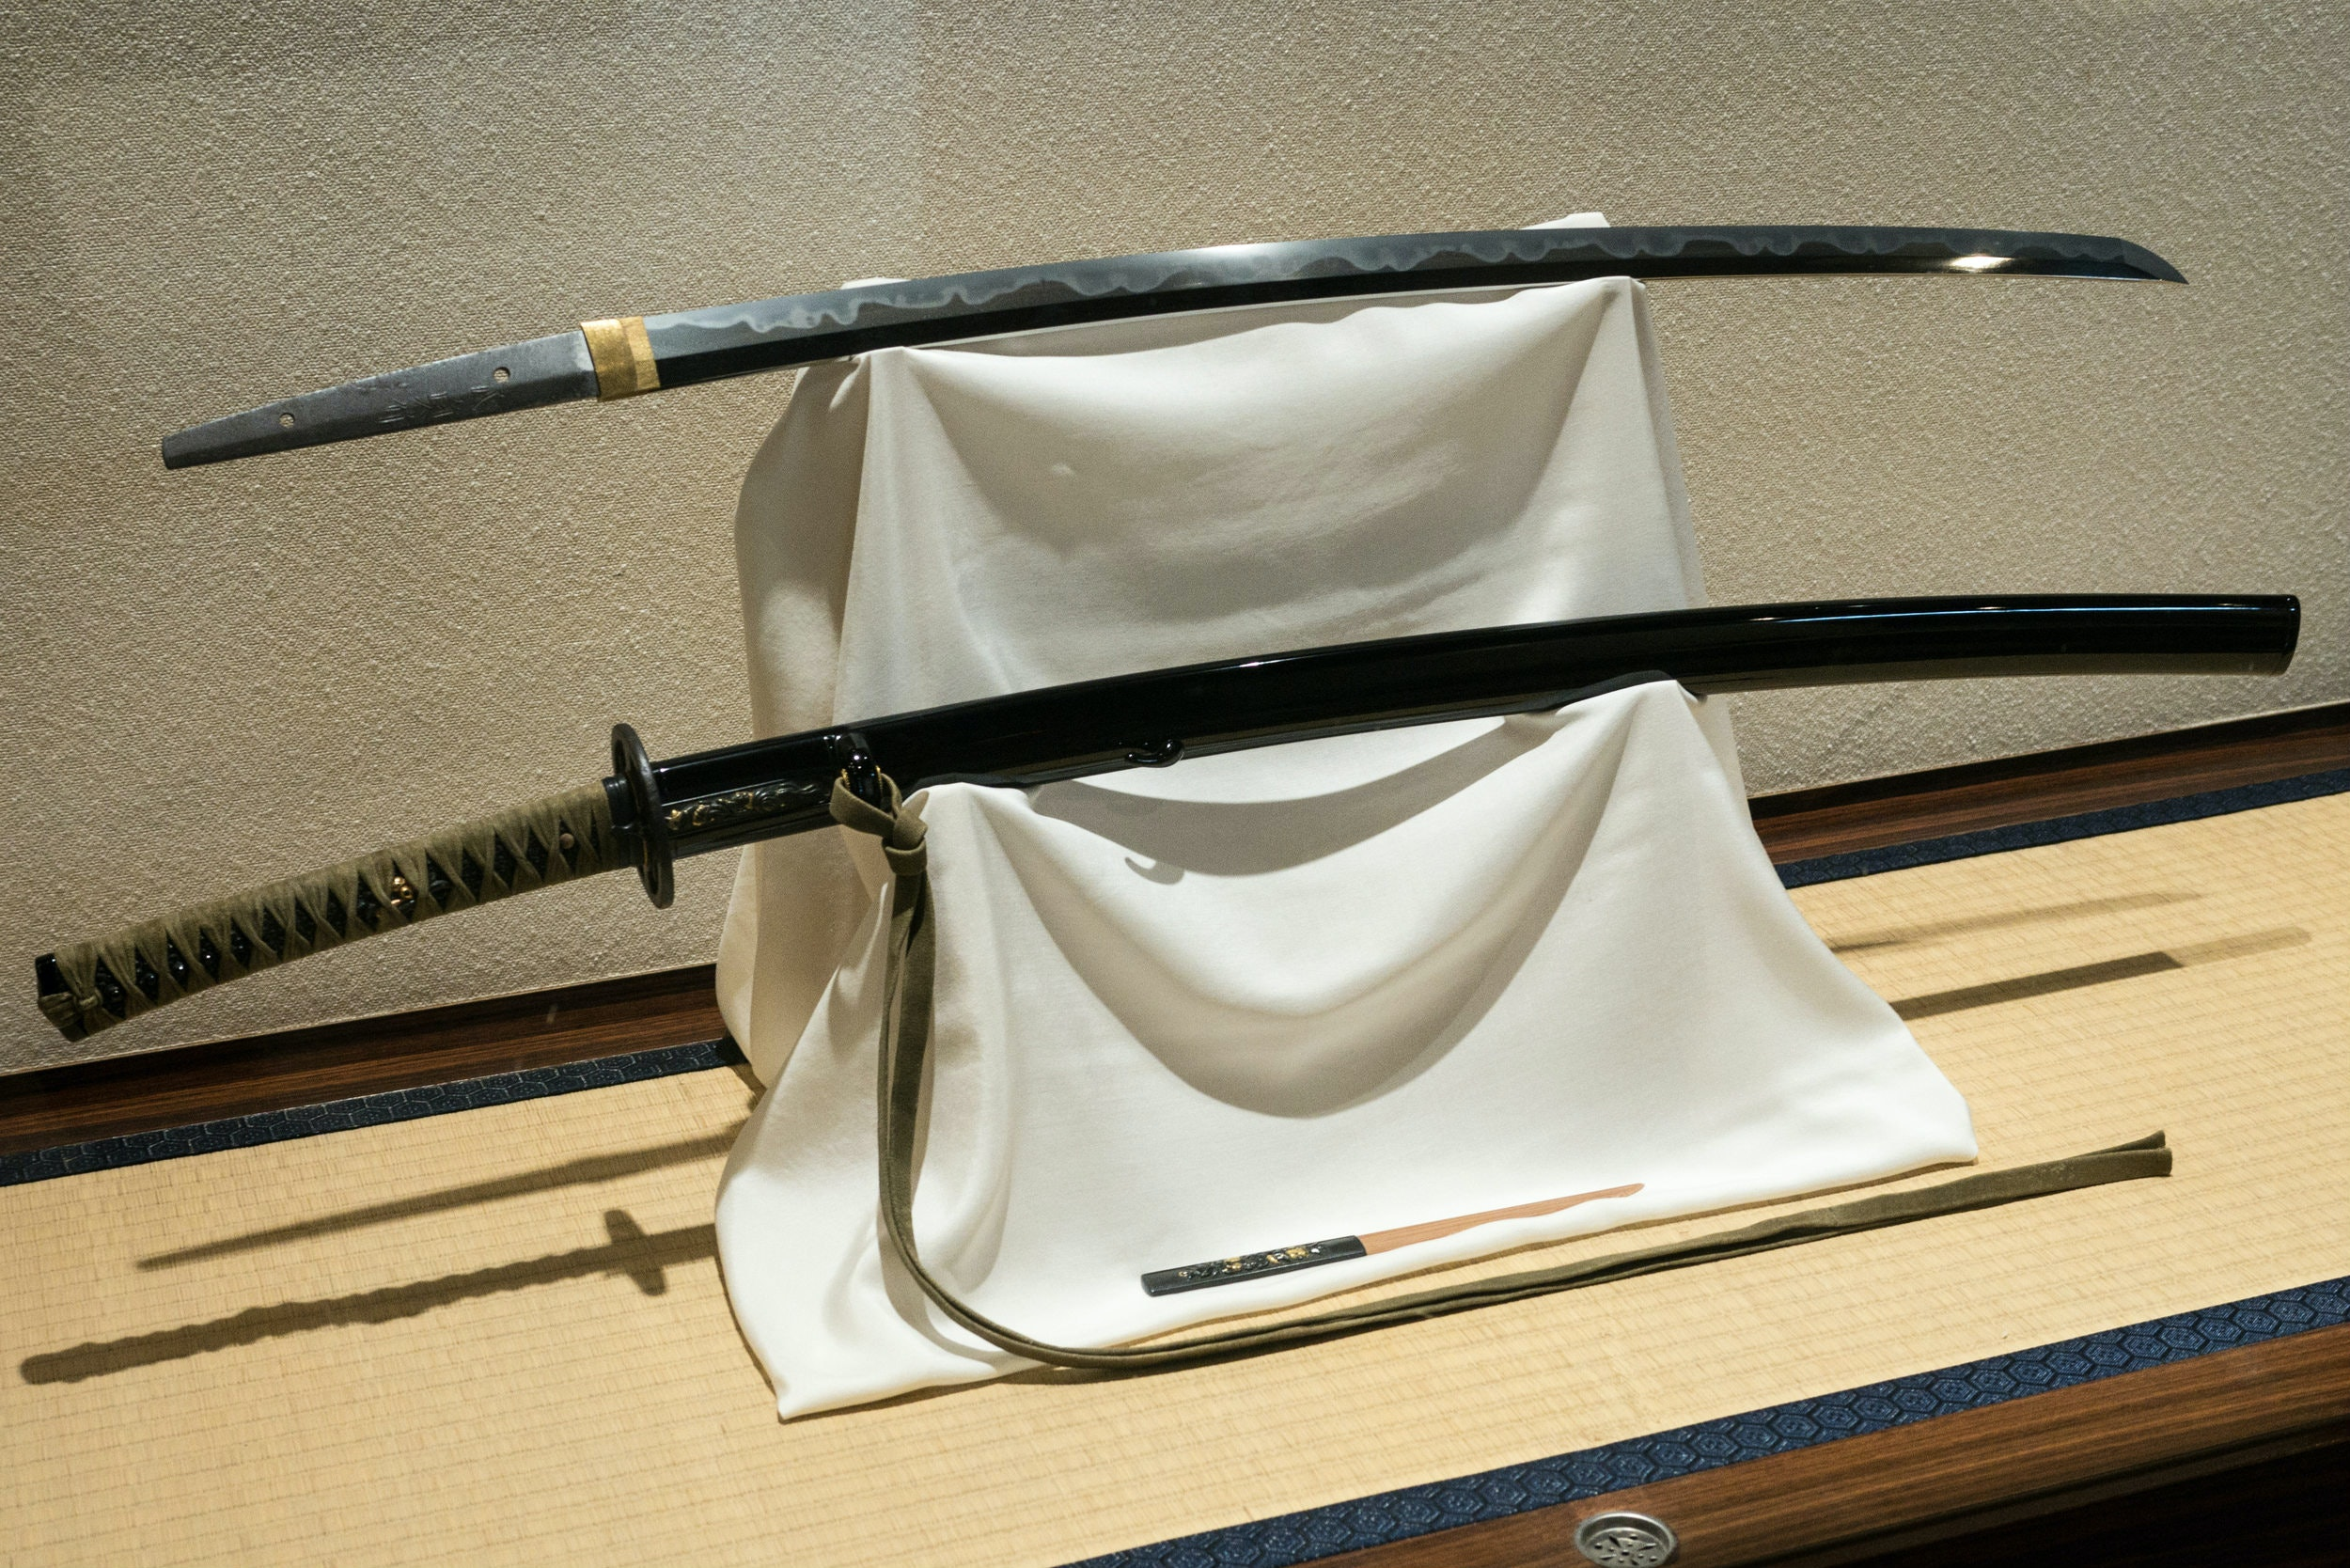 Swordsmiths have been crafting razor-edged weapons in Seki City since the 12th century.